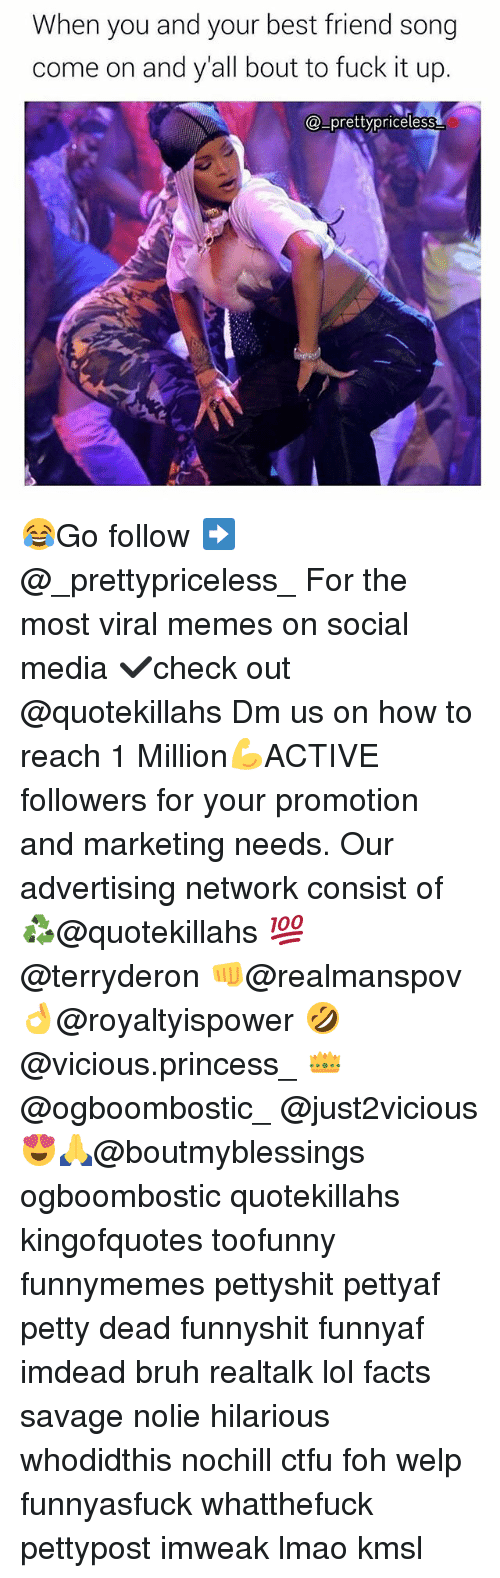 Best Friend, Bruh, and Ctfu: When you and your best friend song  come on and y'all bout to fuck it up.  @ prettypriceles 😂Go follow ➡@_prettypriceless_ For the most viral memes on social media ✔check out @quotekillahs Dm us on how to reach 1 Million💪ACTIVE followers for your promotion and marketing needs. Our advertising network consist of ♻@quotekillahs 💯@terryderon 👊@realmanspov 👌@royaltyispower 🤣@vicious.princess_ 👑@ogboombostic_ @just2vicious😍🙏@boutmyblessings ogboombostic quotekillahs kingofquotes toofunny funnymemes pettyshit pettyaf petty dead funnyshit funnyaf imdead bruh realtalk lol facts savage nolie hilarious whodidthis nochill ctfu foh welp funnyasfuck whatthefuck pettypost imweak lmao kmsl